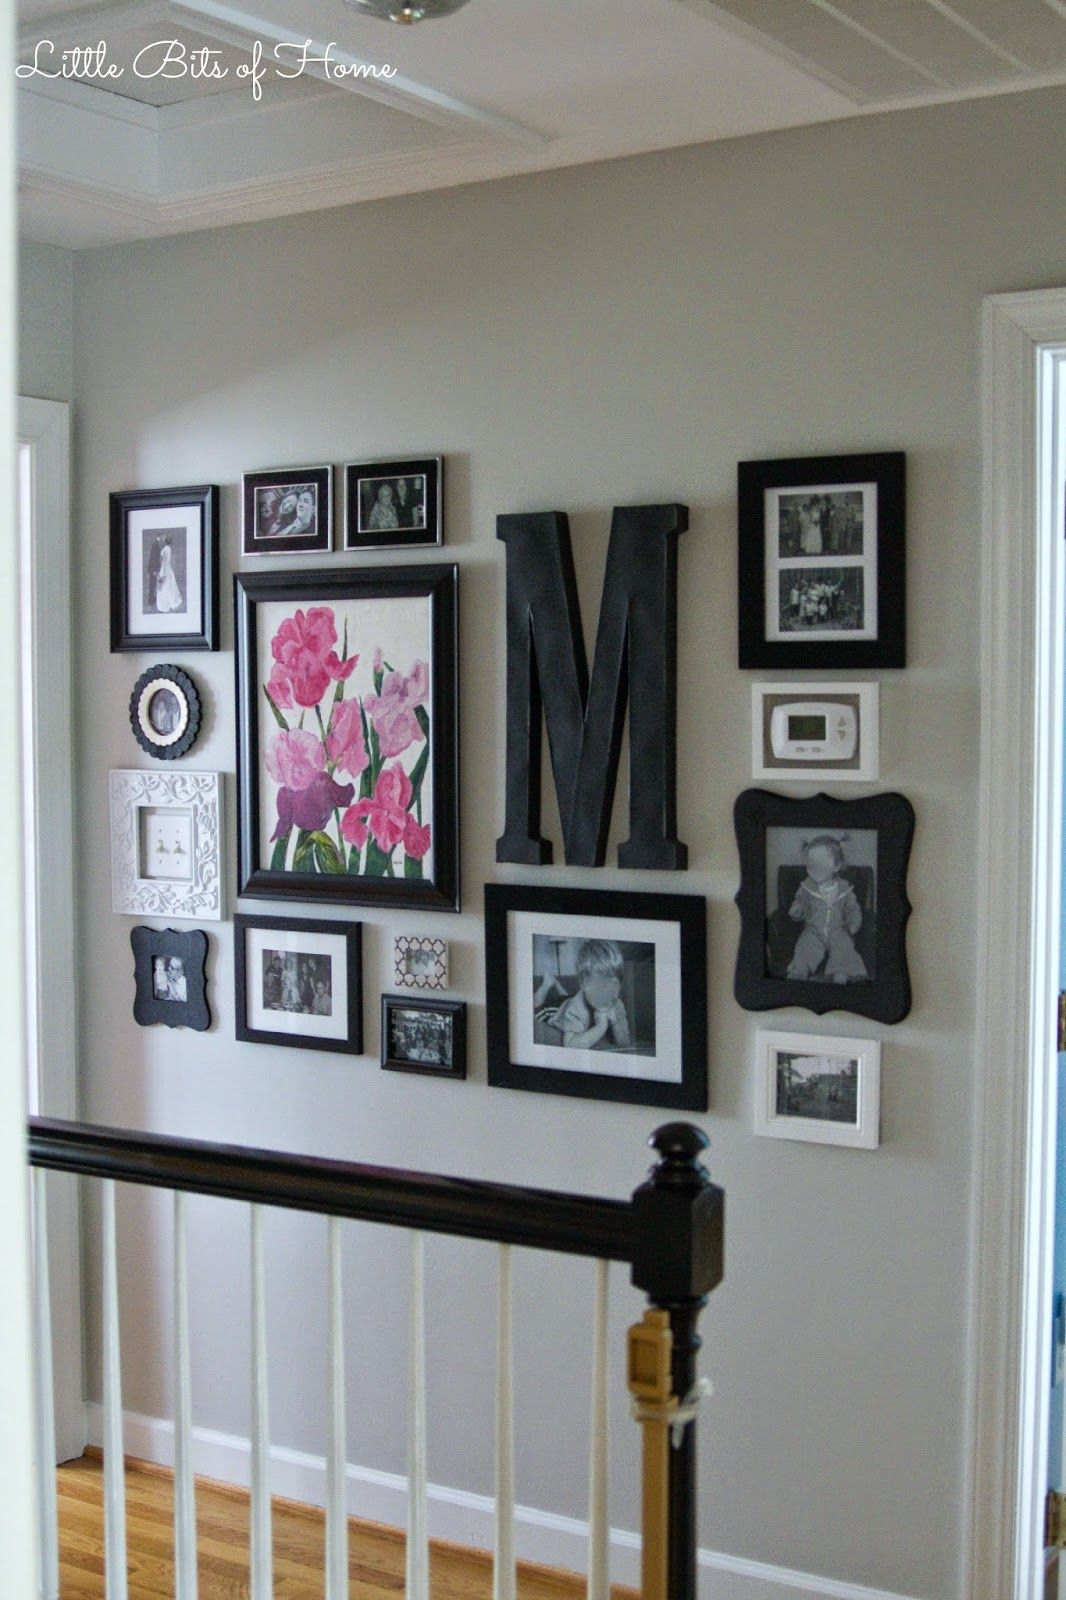 little bits of home hallway gallery wall gallery walls in 2019 home decor hallway. Black Bedroom Furniture Sets. Home Design Ideas